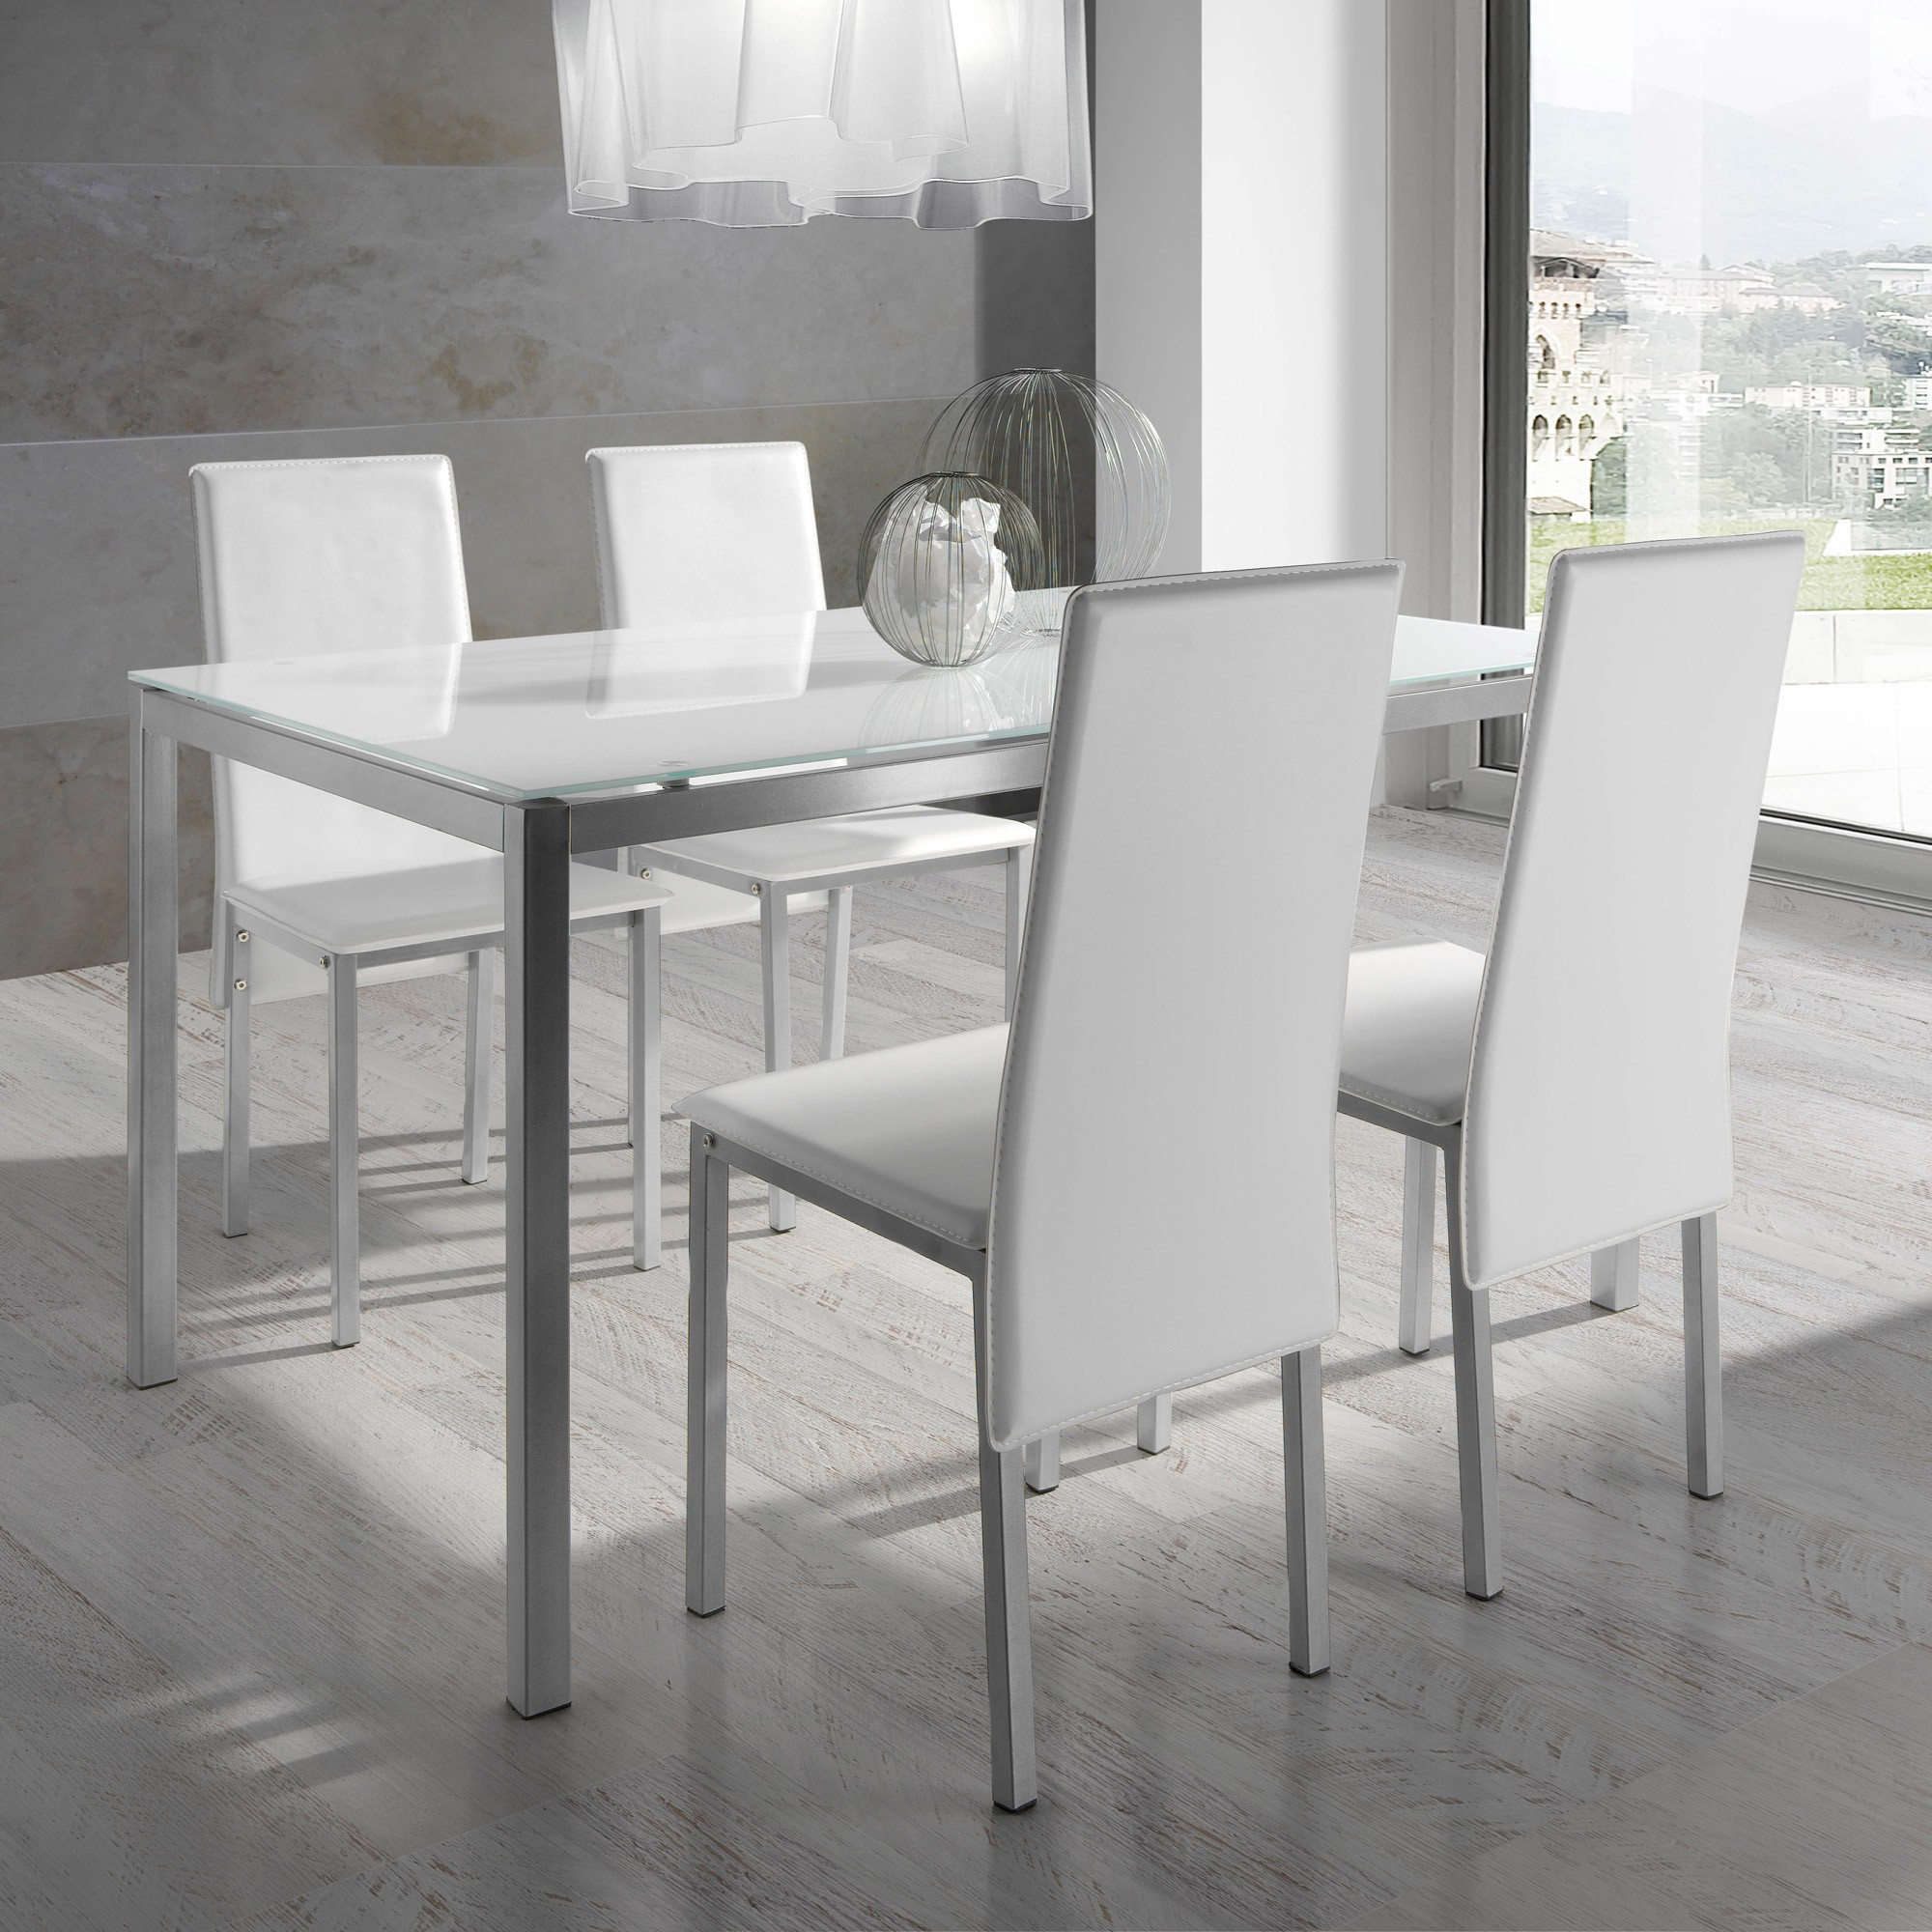 Ensemble table et chaise salle a manger but chaise - Conforama table et chaise salle a manger ...